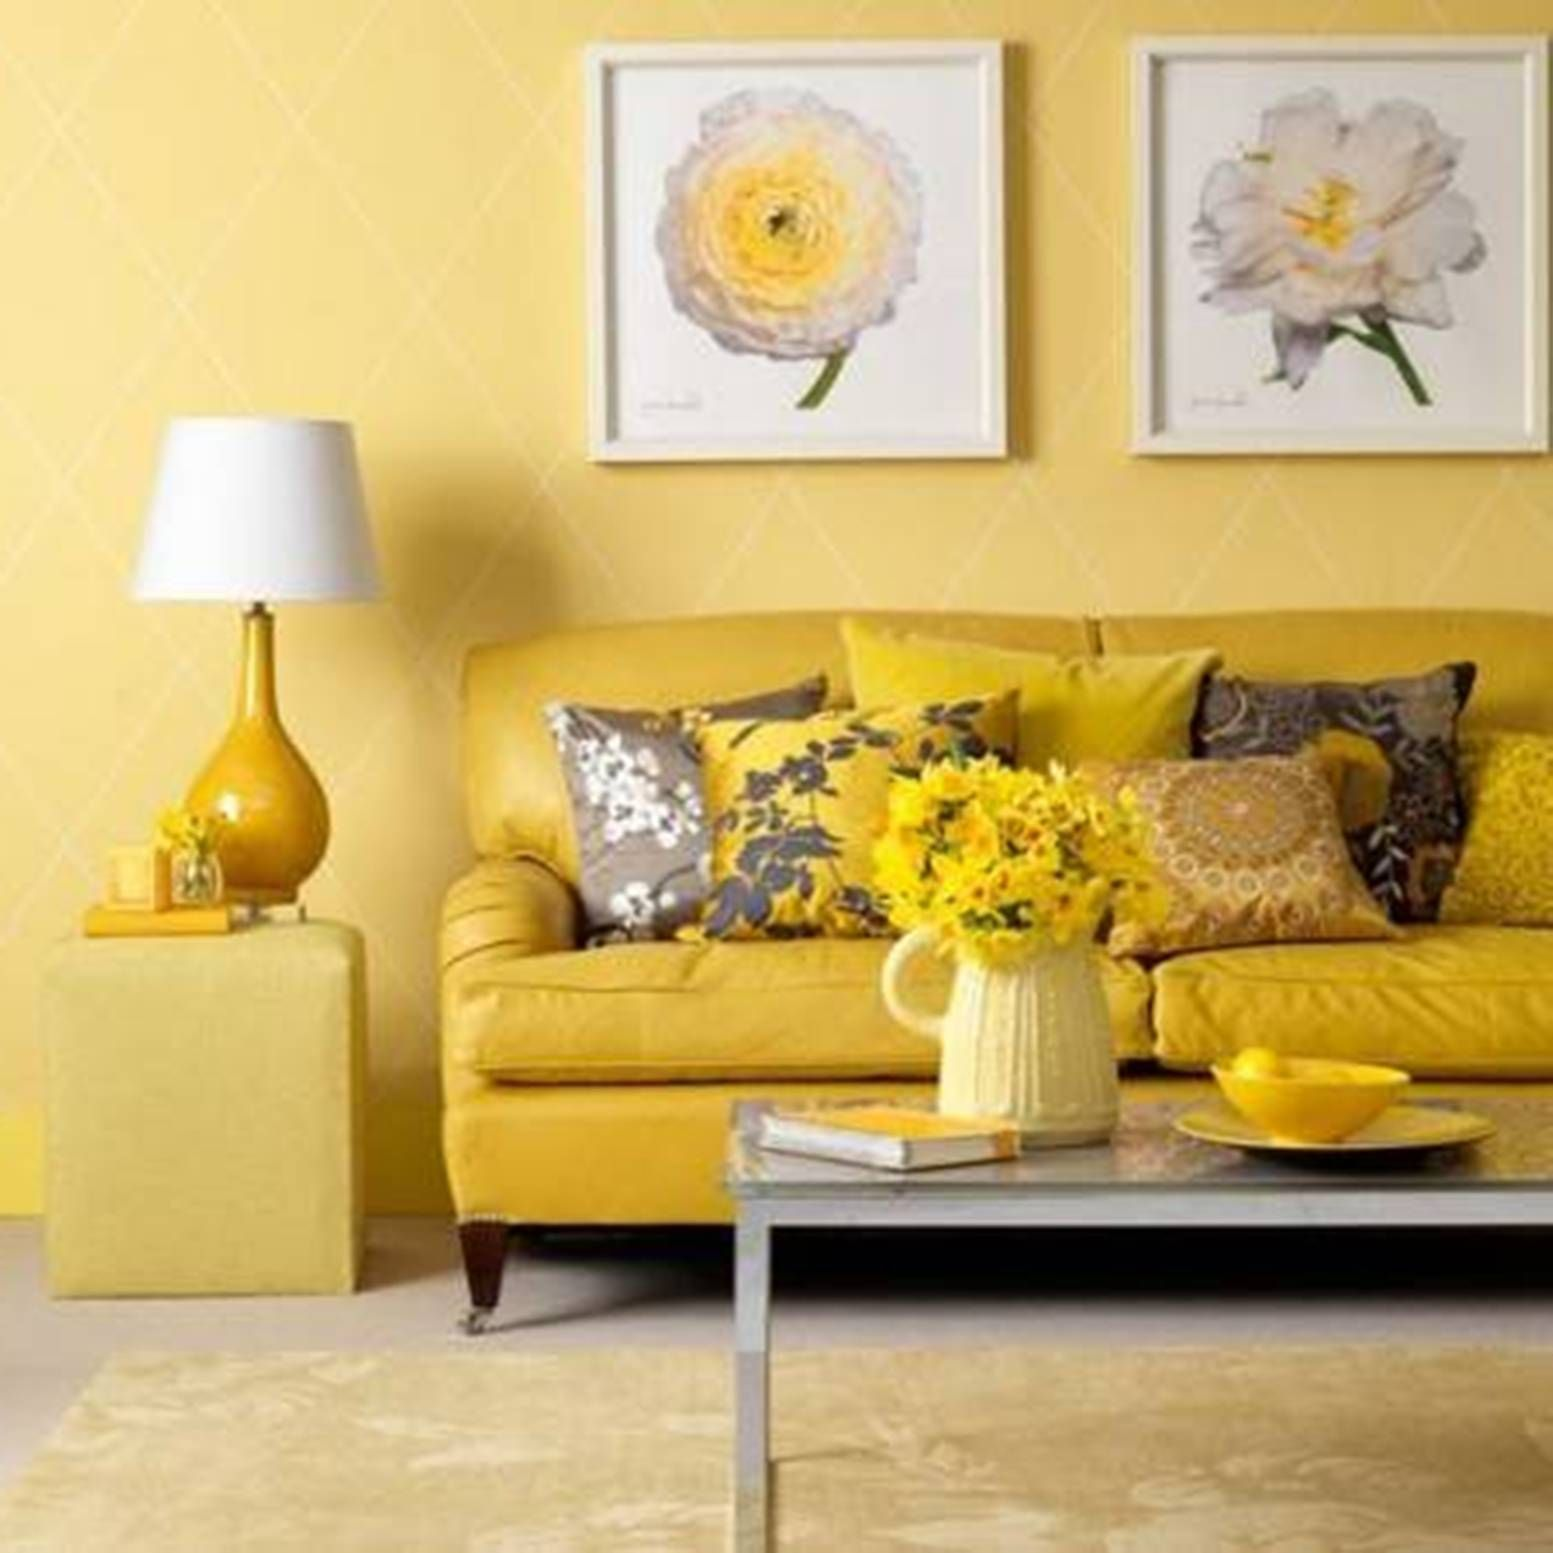 Living Room Ideas Yellow pink, green and orange decor |  decor ideas in yellow and